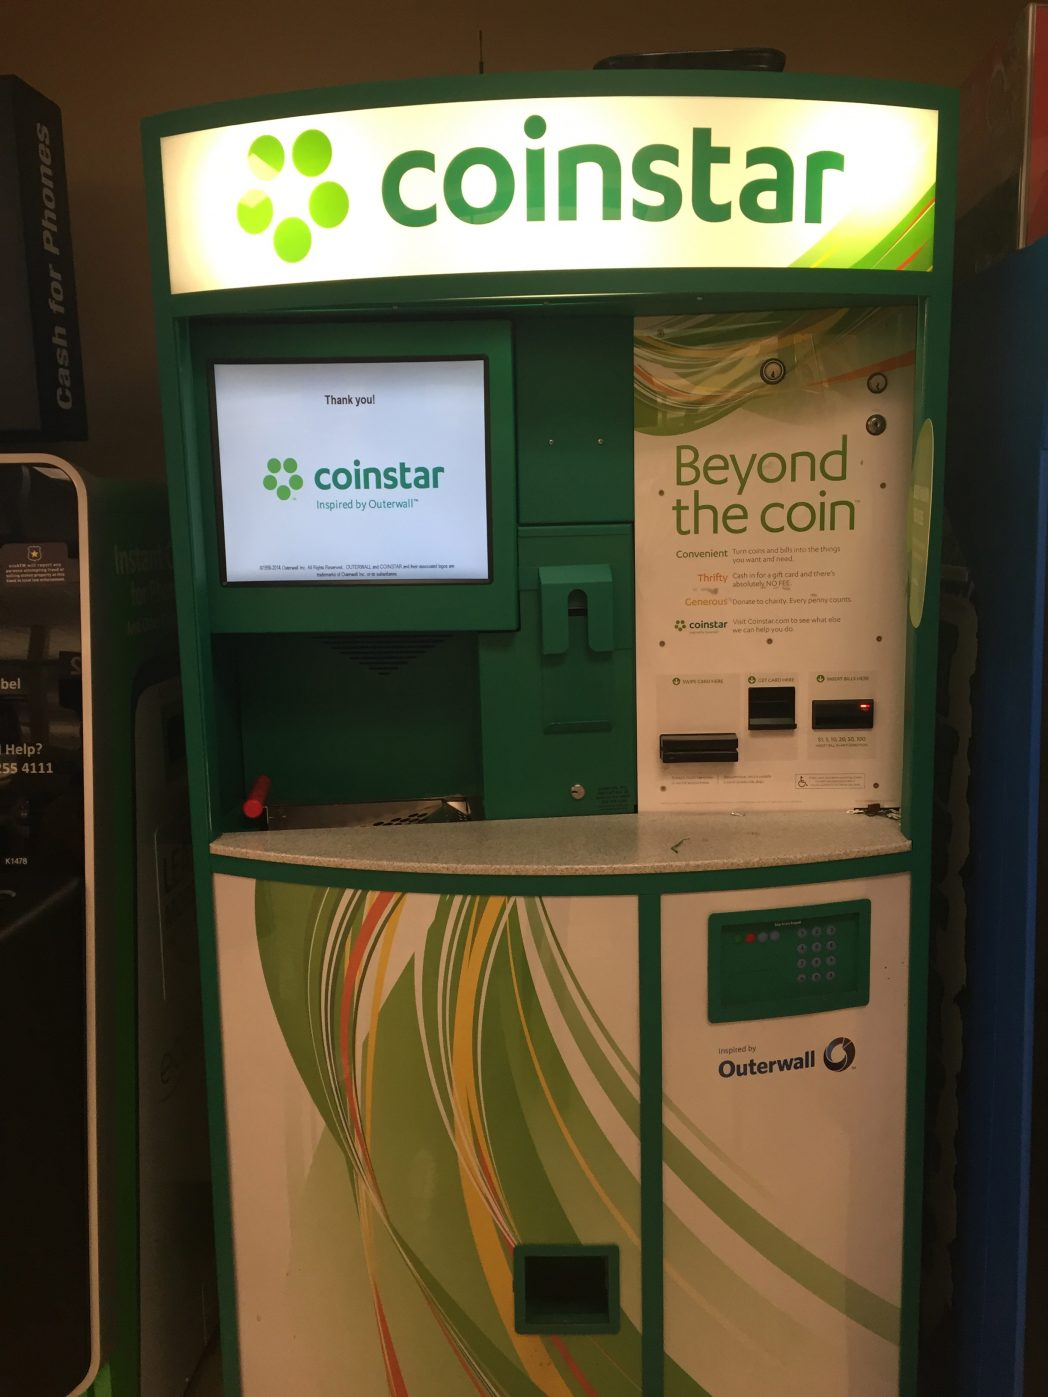 Lose the Loose Change and Cash in! Coinstar to the Rescue